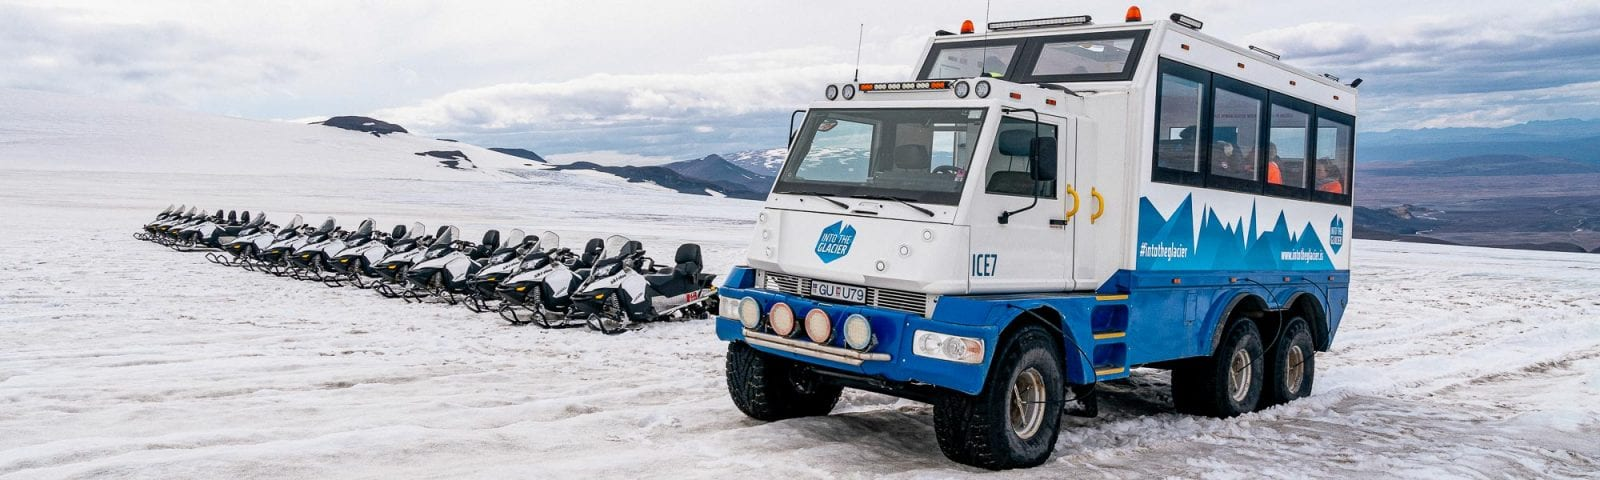 Snowmobile and truck on a glacier